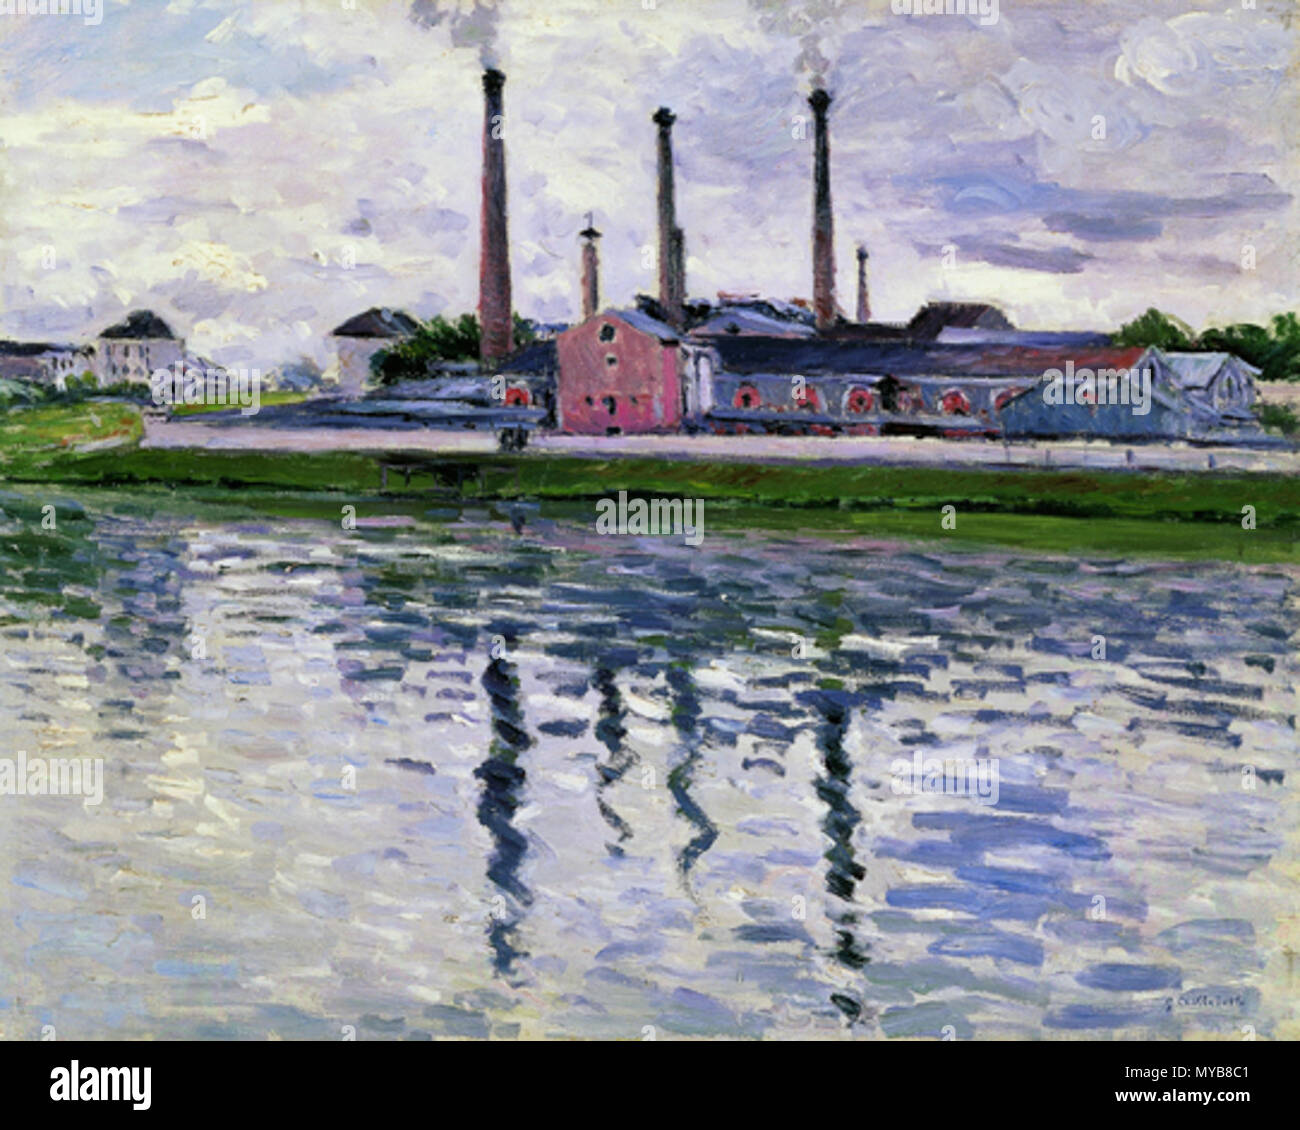 . English: Painting by Gustave Caillebotte, (French impressionist, 1848–1894) entitled Factories in Argenteuil, 1888. Oil on canvas, 25 9/16 x 32 5/16 in. (65 x 82 cm). Private collection . 22 February 2013, 11:06:06. Gustave Caillebotte (d. 1894) 87 Brooklyn Caillebotte factories-in-argenteuil - Stock Image